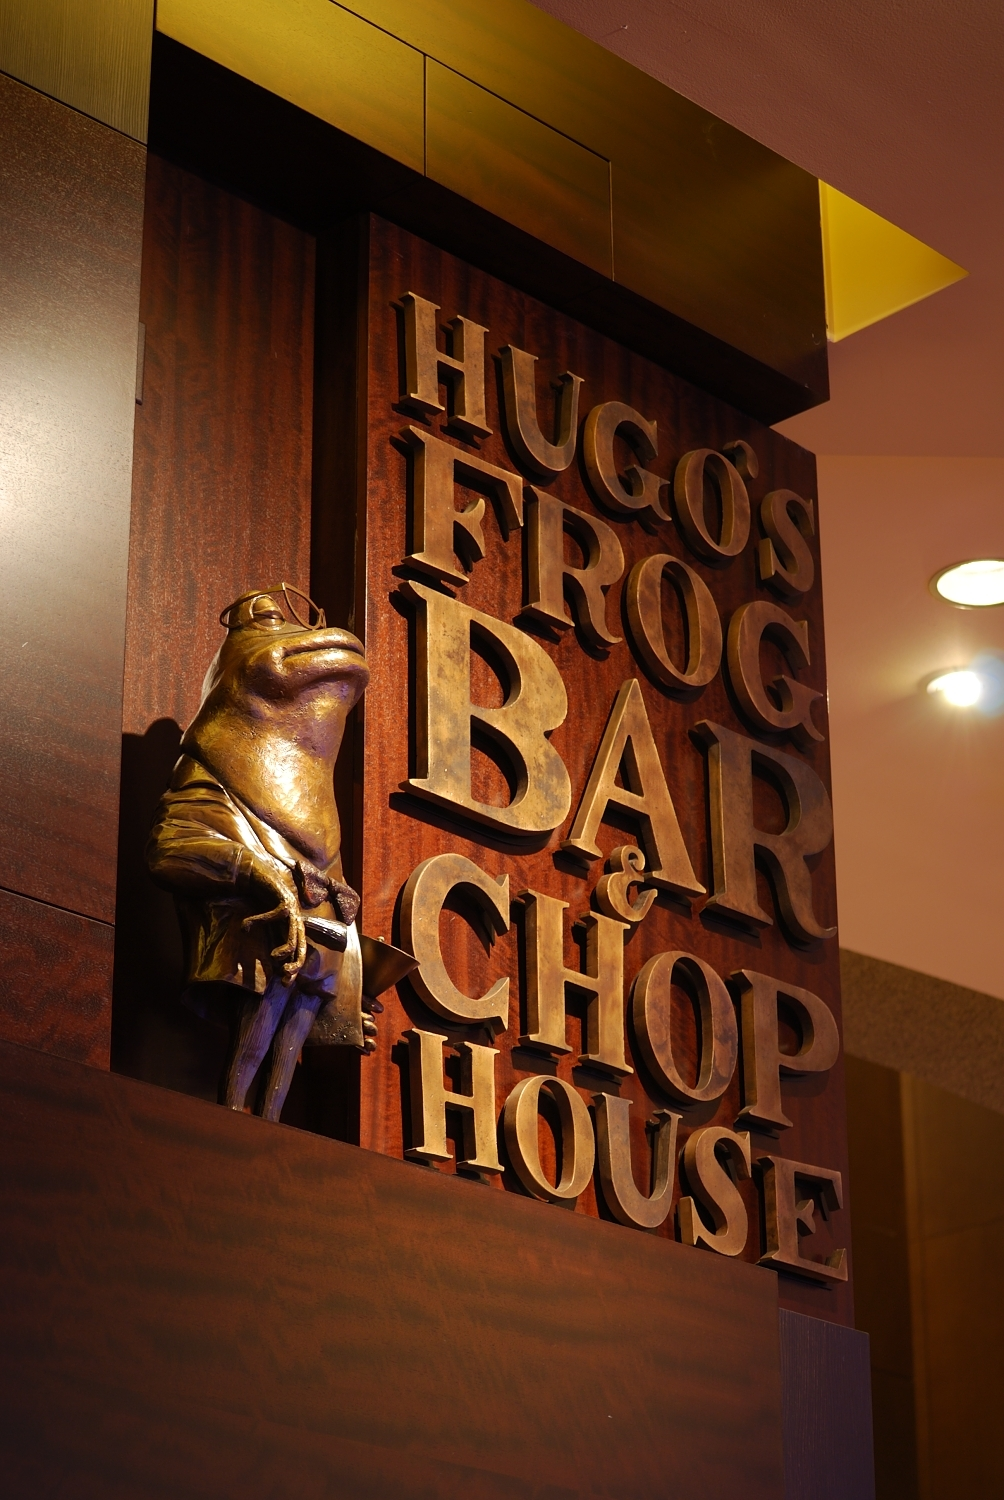 Hugos Frog Bar Chop House Hops Into Sugarhouse Casino Business Wire Free Download Grg Series Wiring Diagram